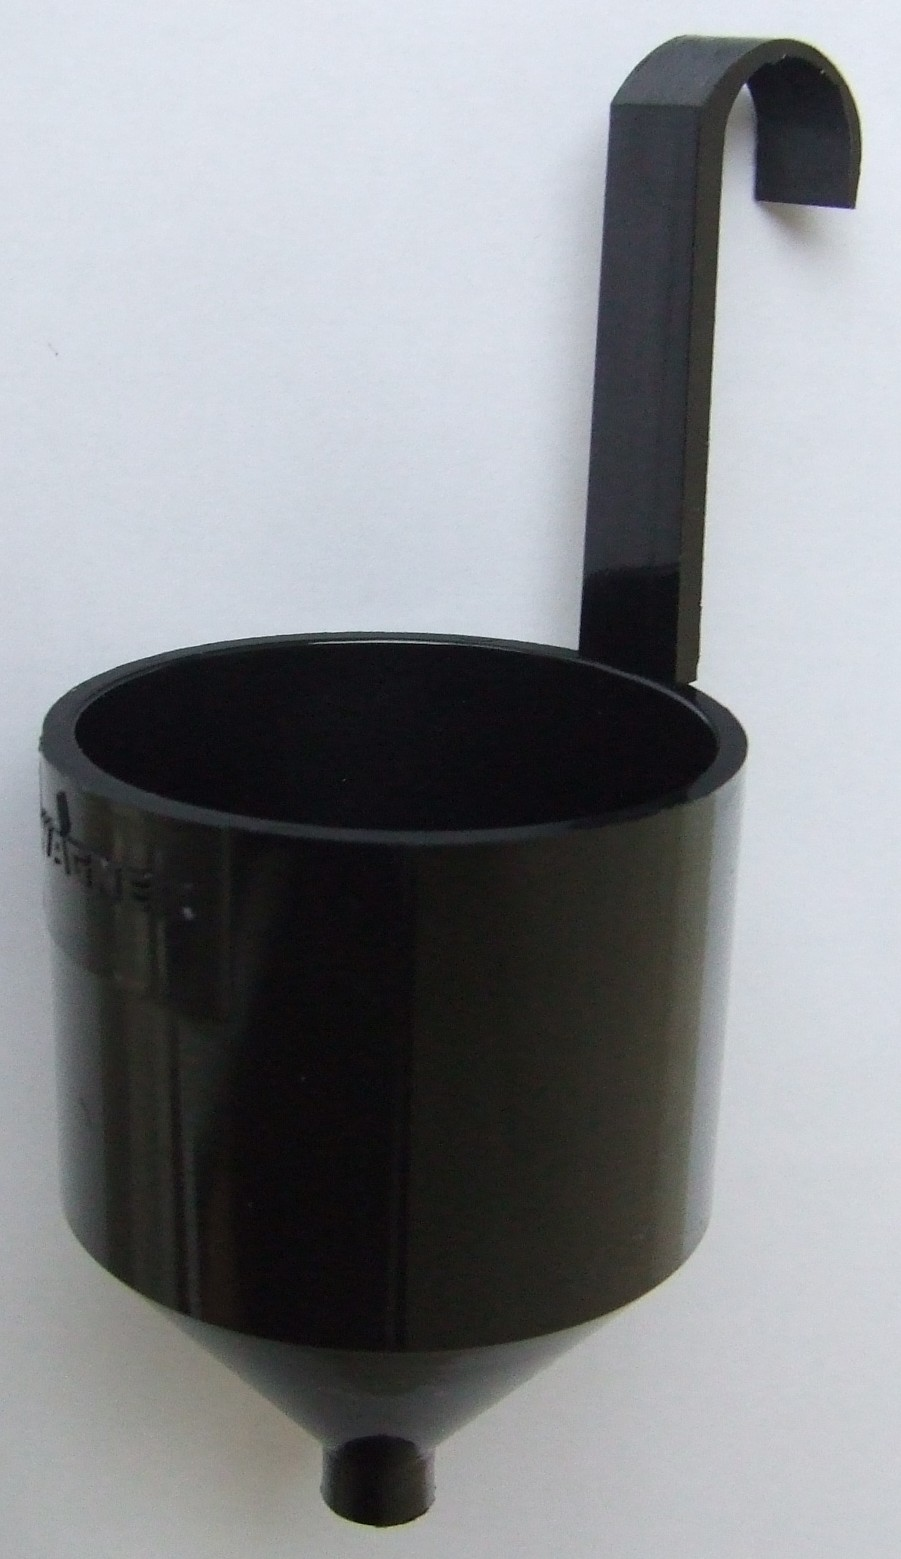 Ford Viscosity Cup Wikipedia